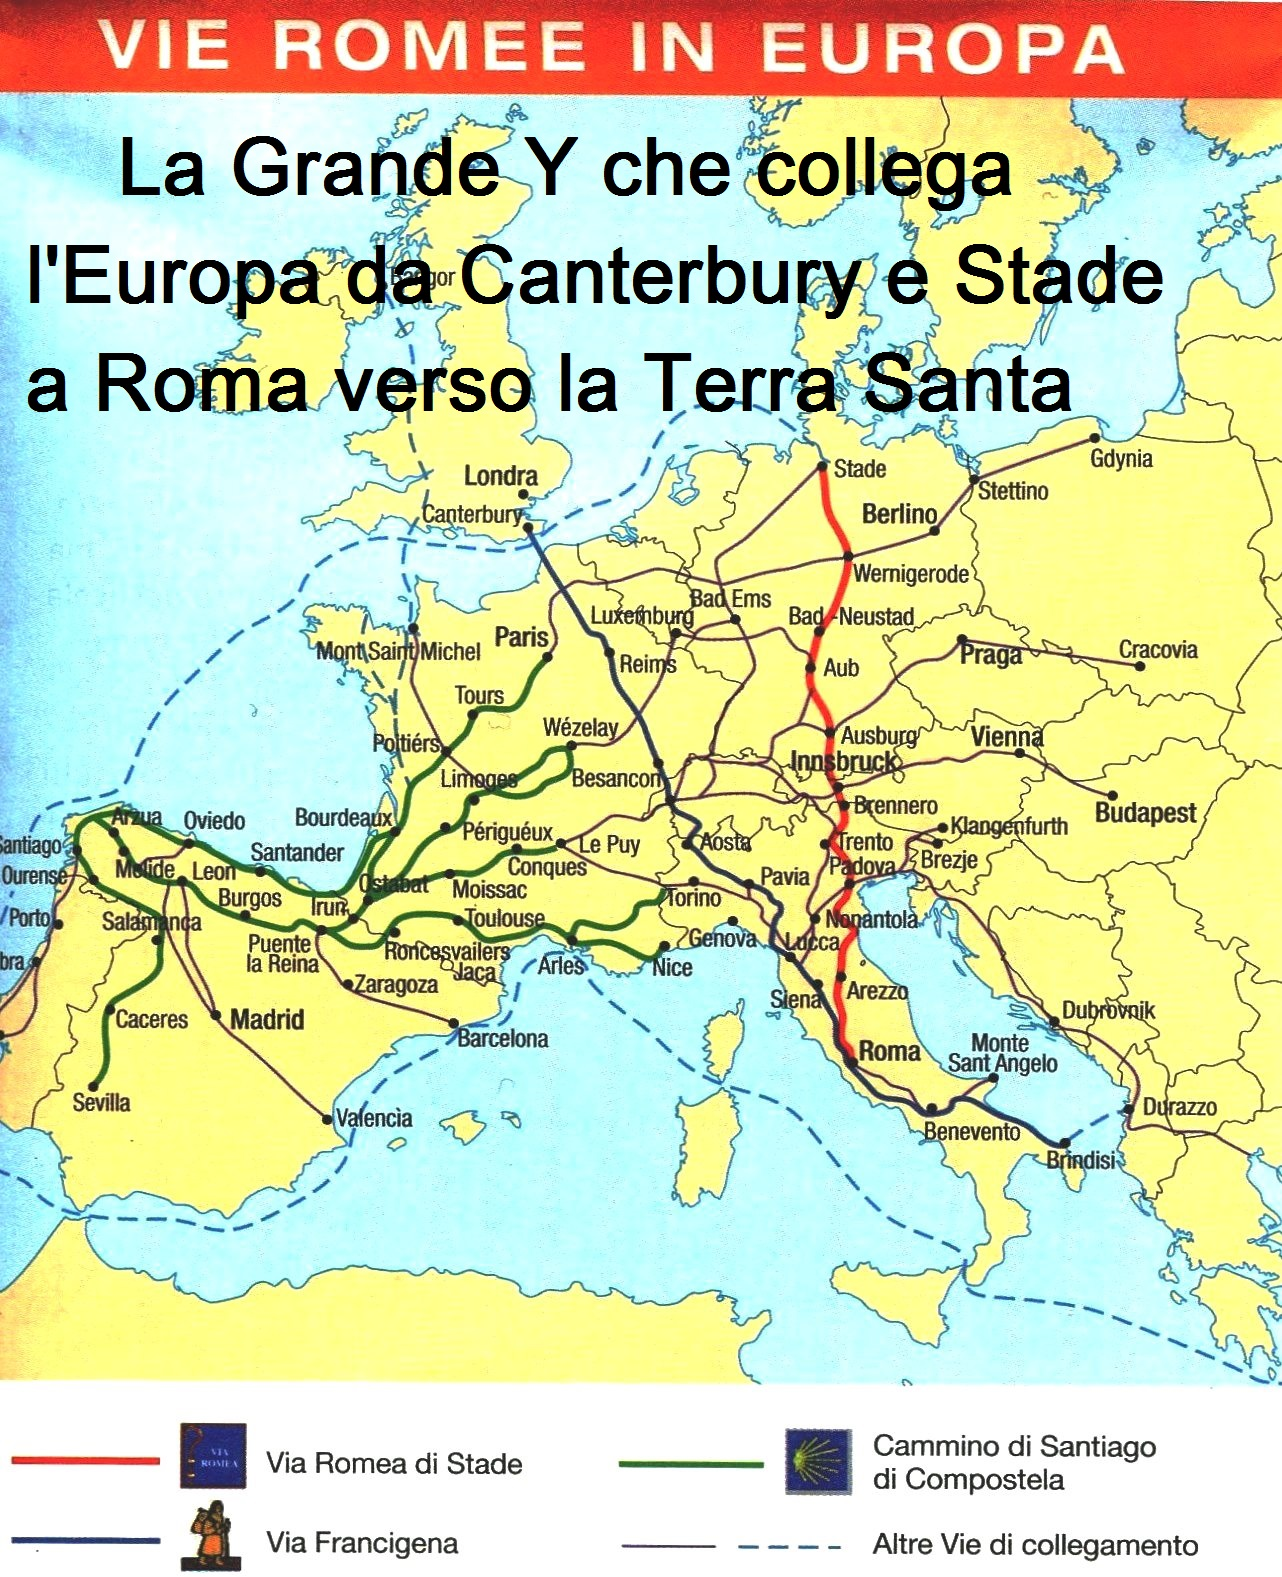 Documenti e Mappe Via Romea Germanica - Viaromeagermanica